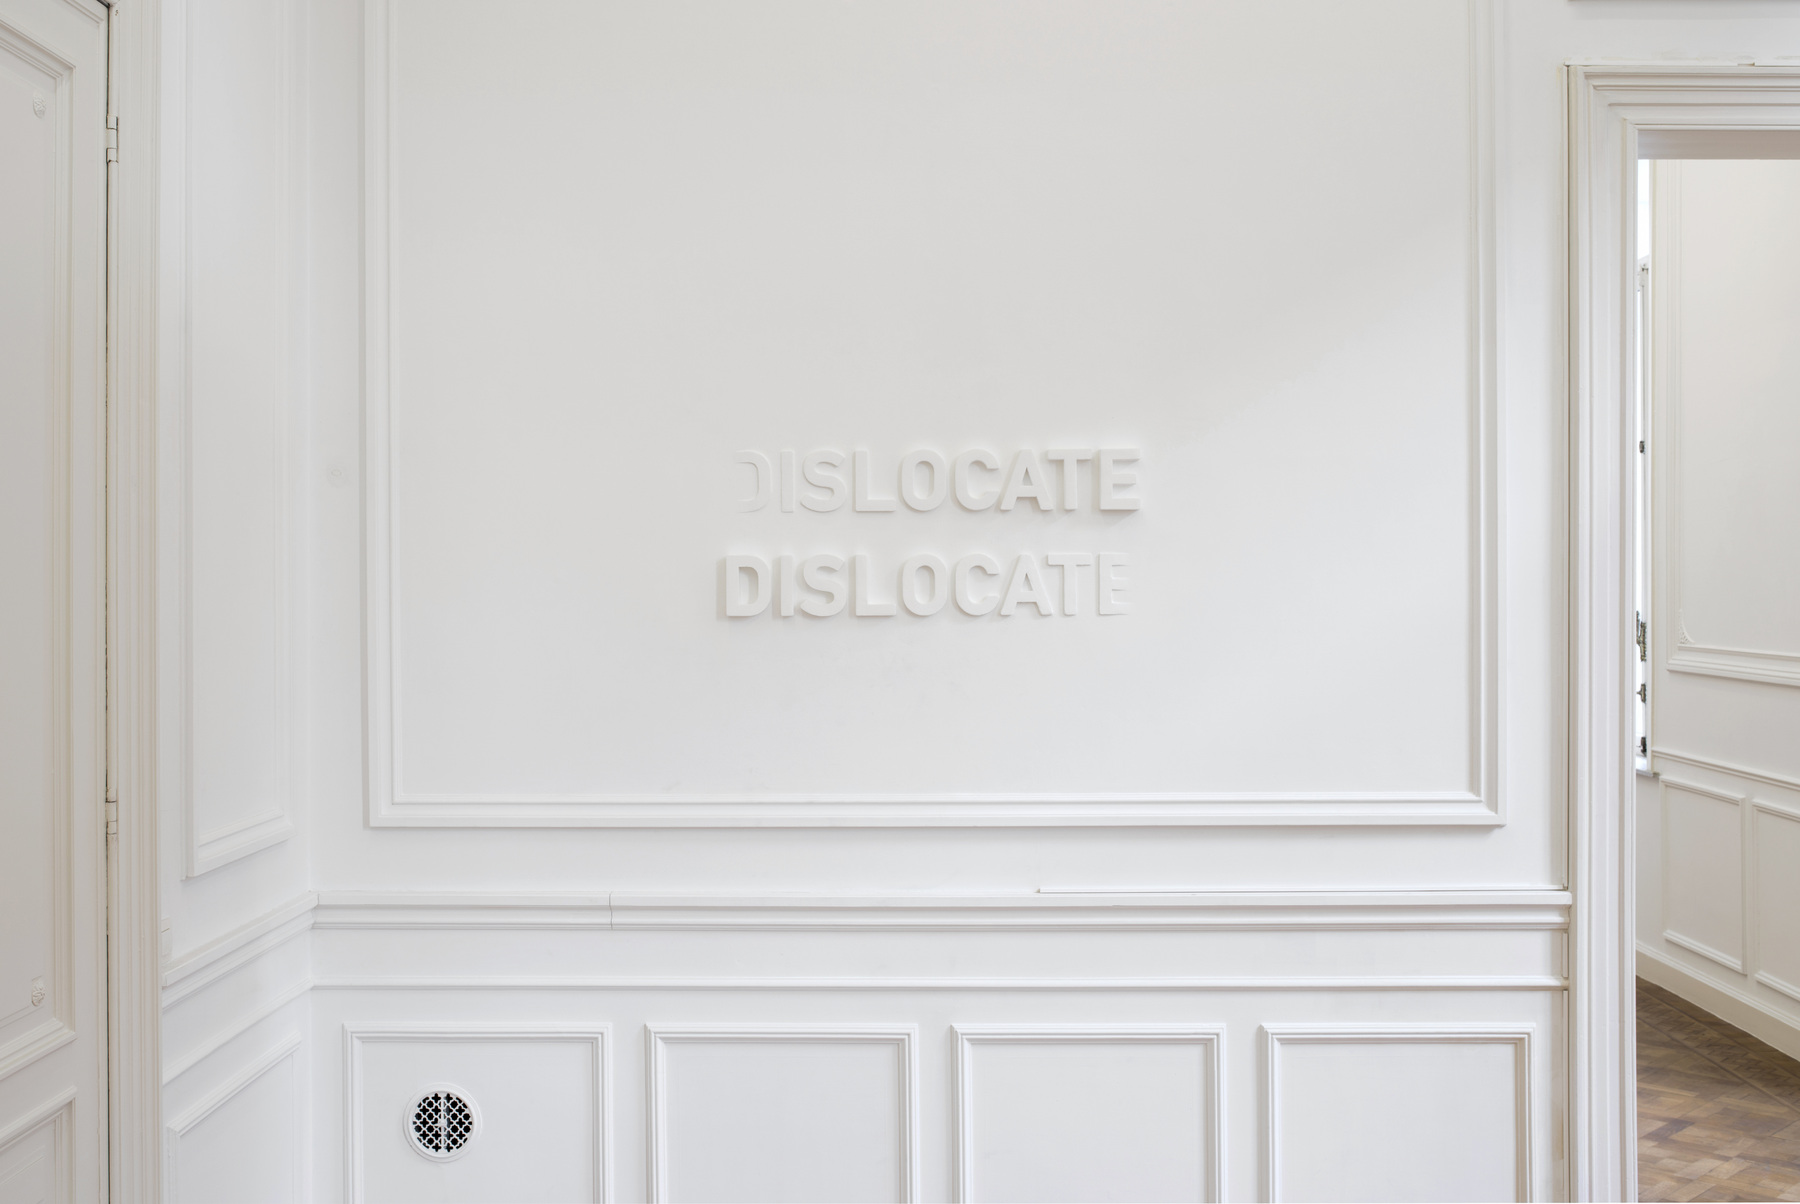 Melik Ohanian, Deviation (03) — Dislocate, 2014, Letters in polystyrene and plaster, 60 x 120 cm, 1_3